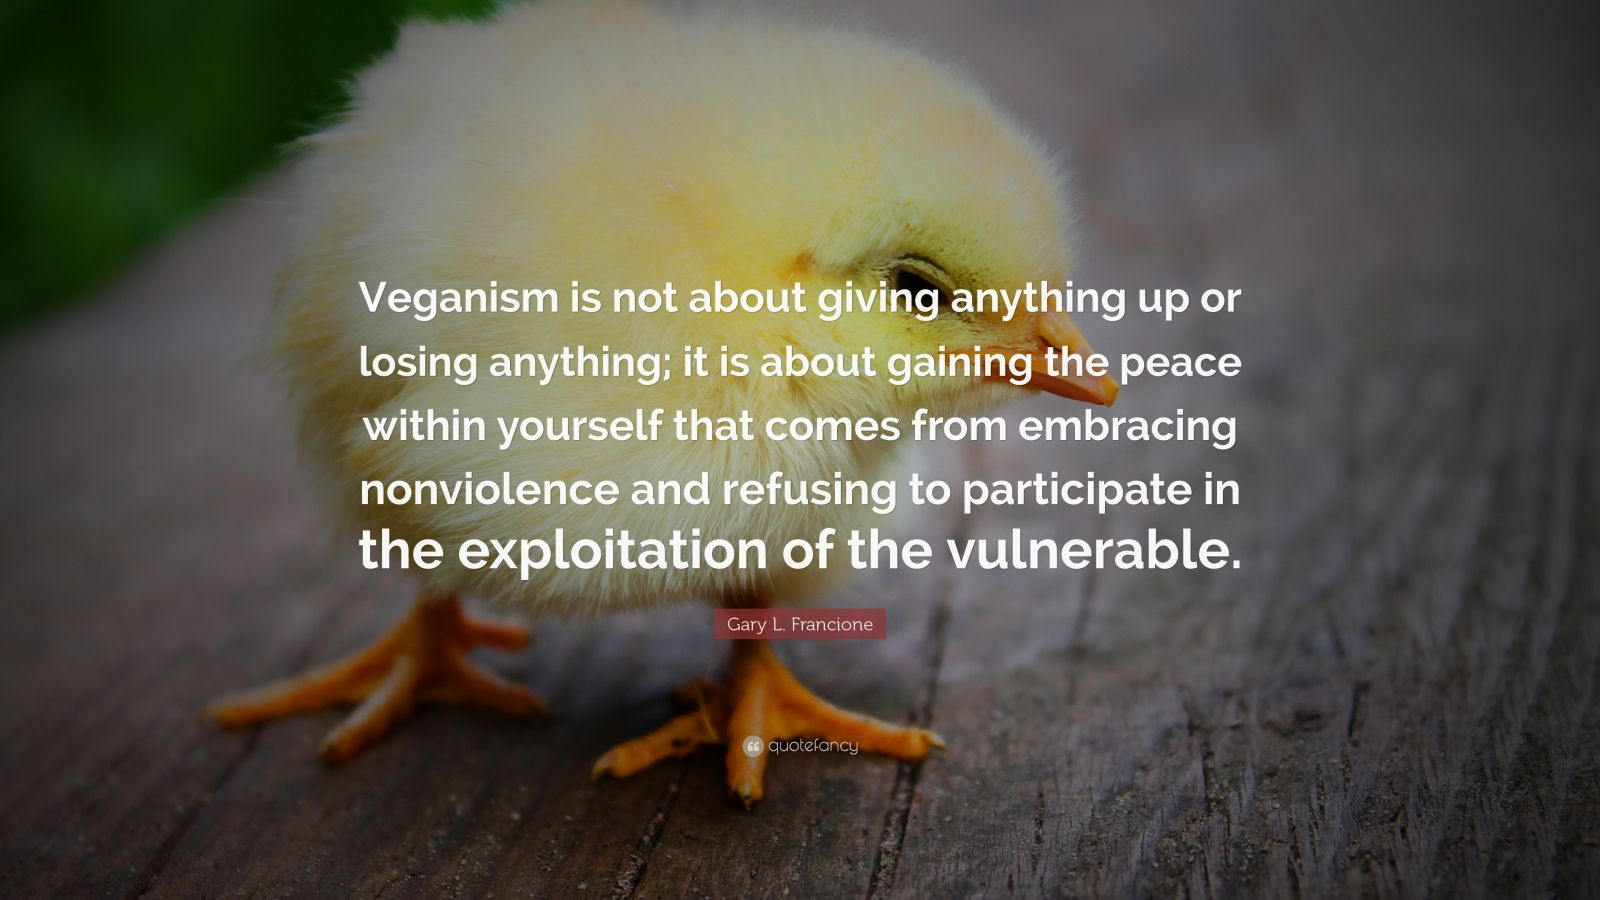 """Gary L. Francione Quote: """"Veganism is not about giving anything up or losing anything; it is about gaining the peace within yourself that comes from embracing nonviolence and refusing to participate in the exploitation of the vulnerable."""""""